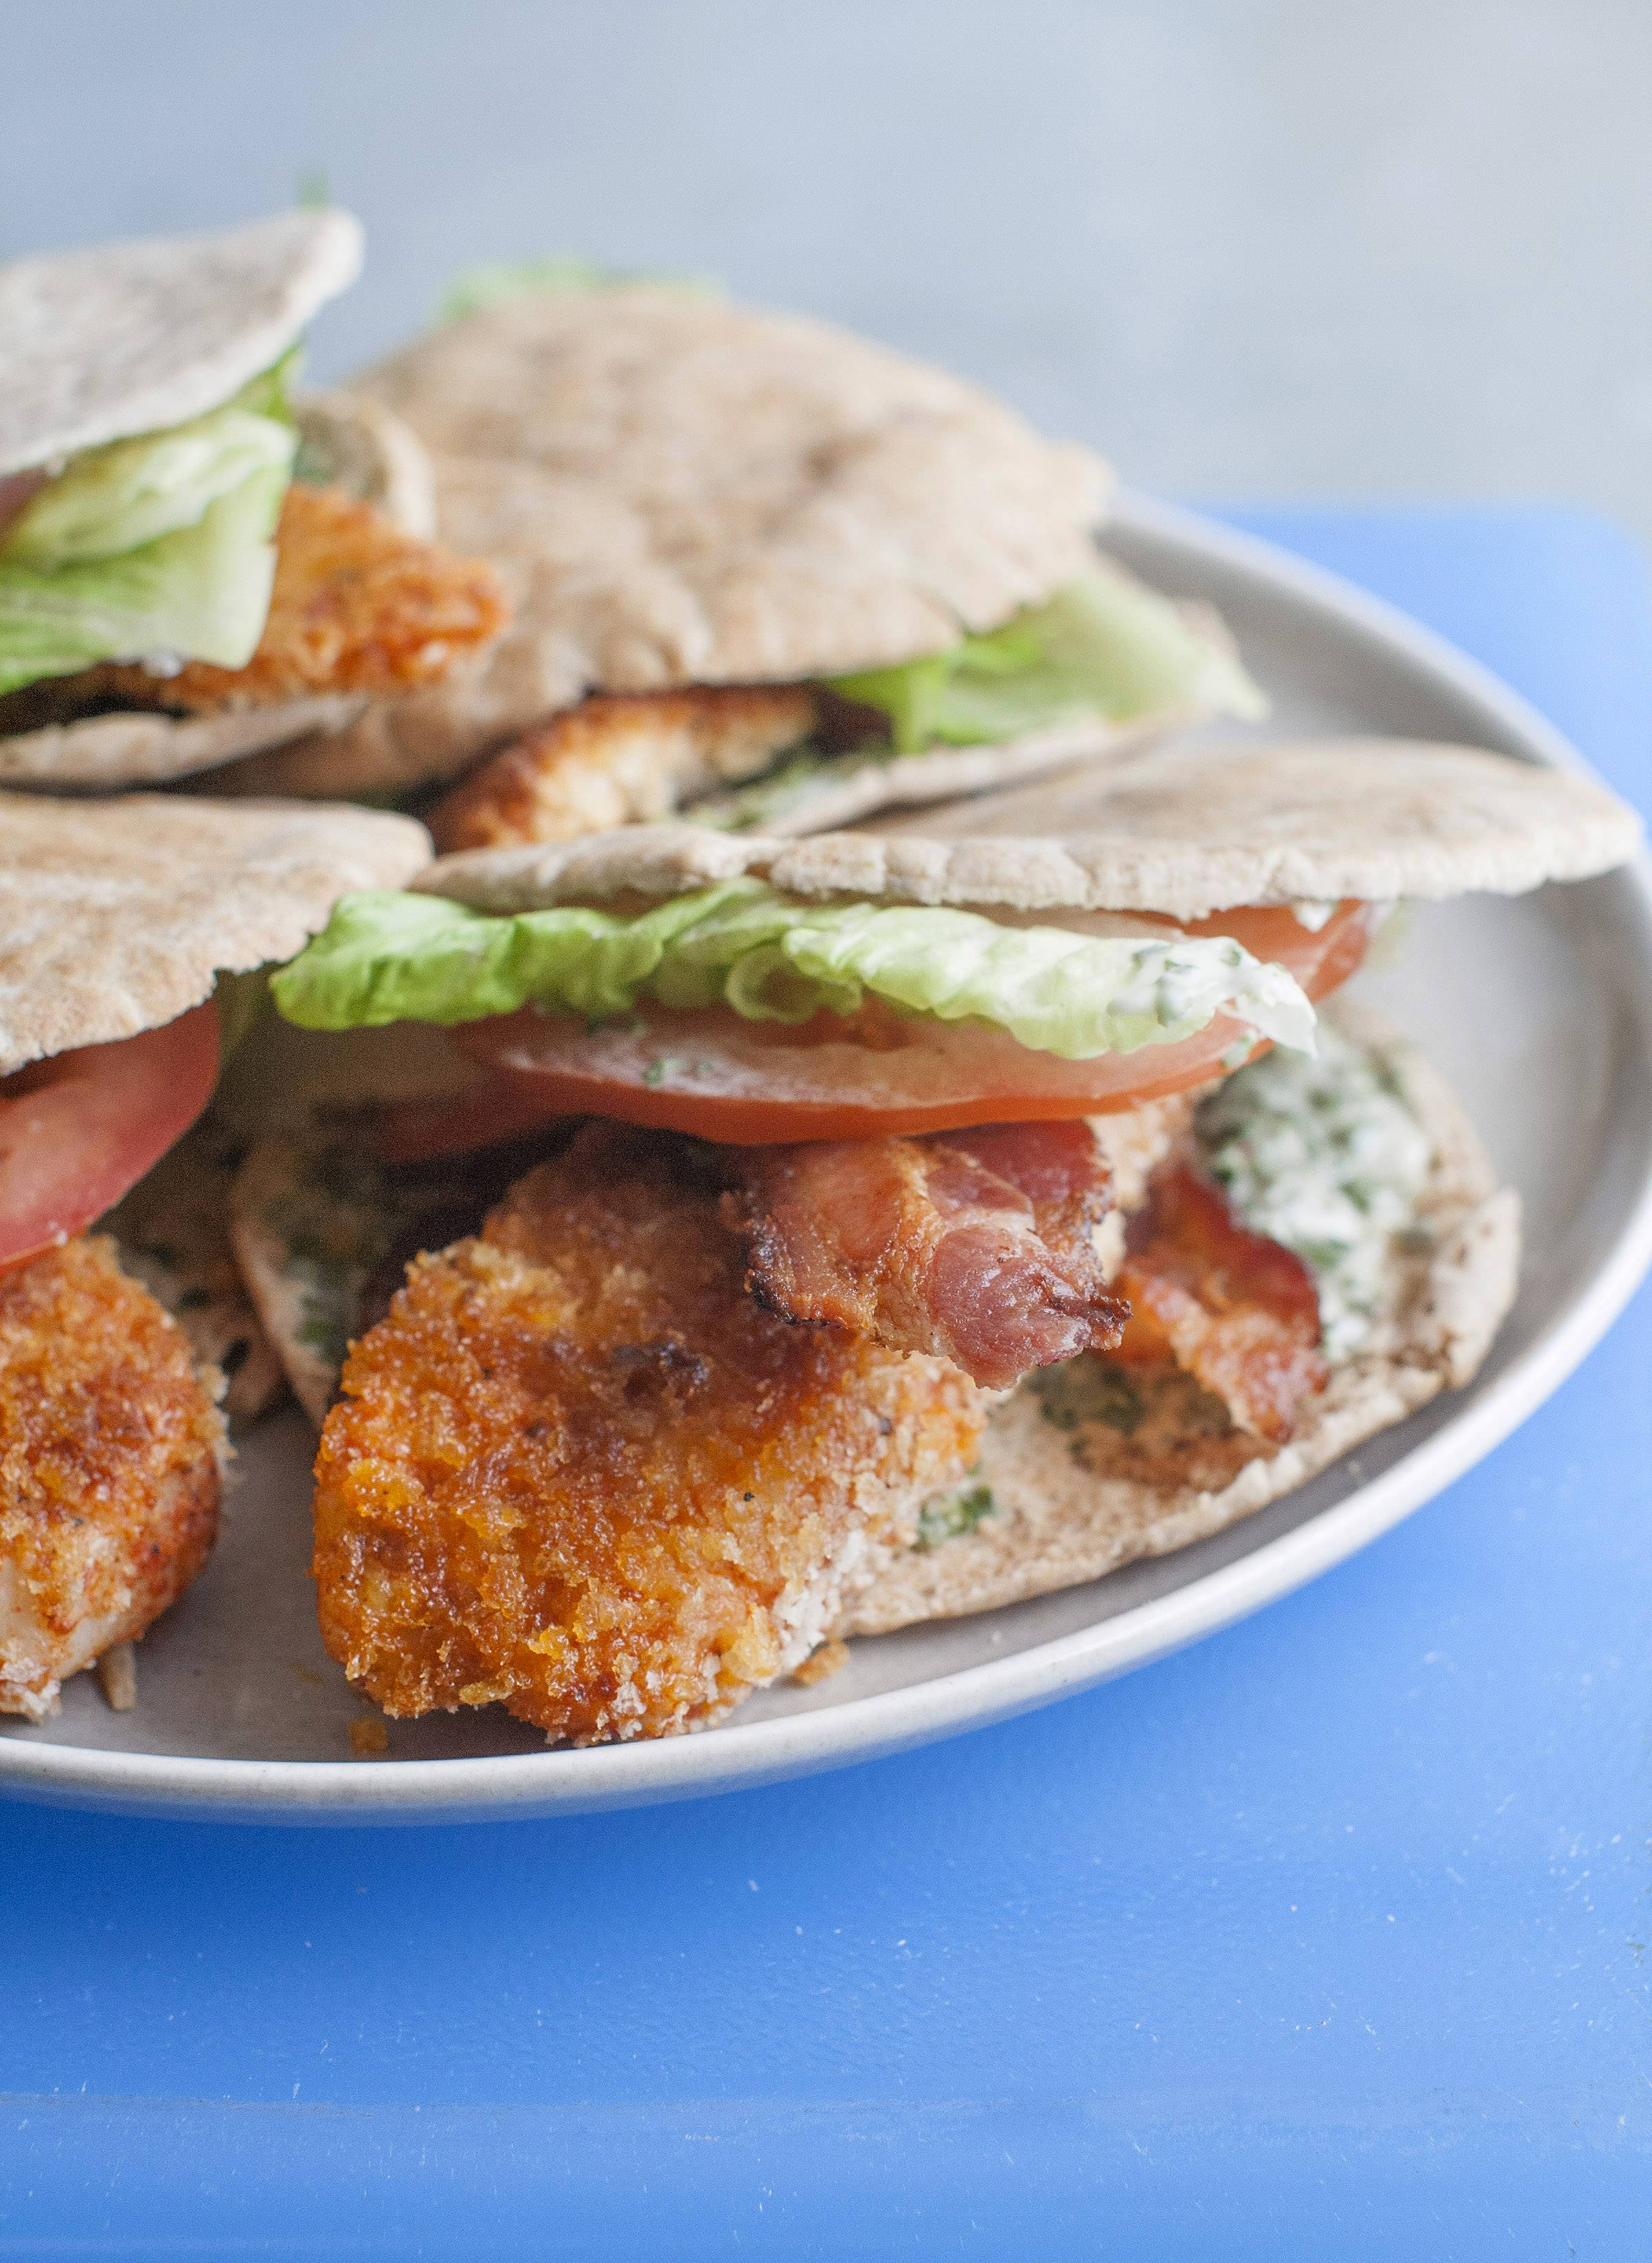 Tuck lightly breaded tilapia into a BLT pita for added flavor without much added fat.